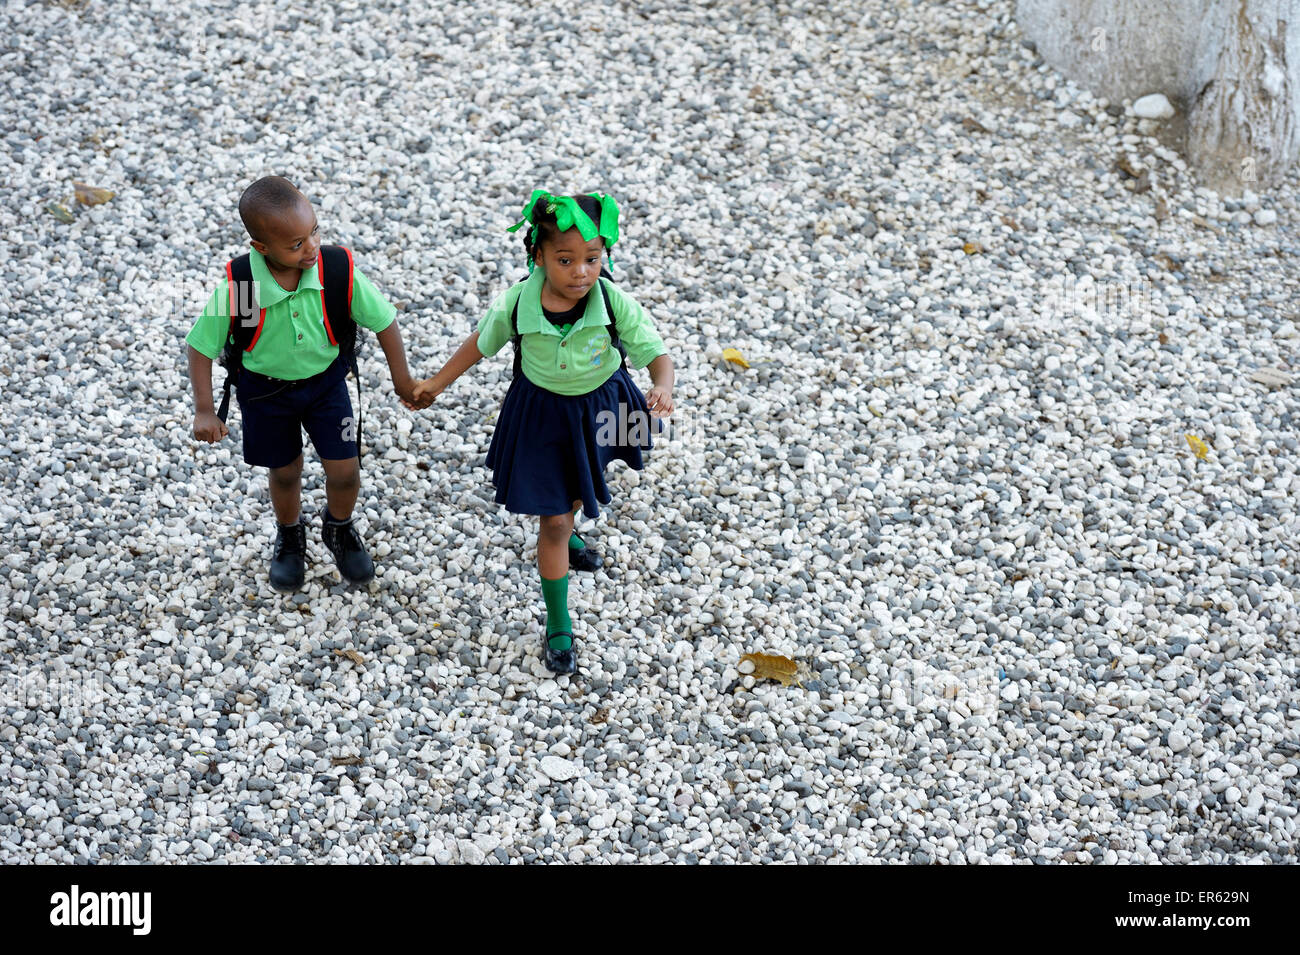 Boy and girl, siblings, holding hands on the way to the nursery school, Port-au-Prince, Ouest Department, Haiti - Stock Image